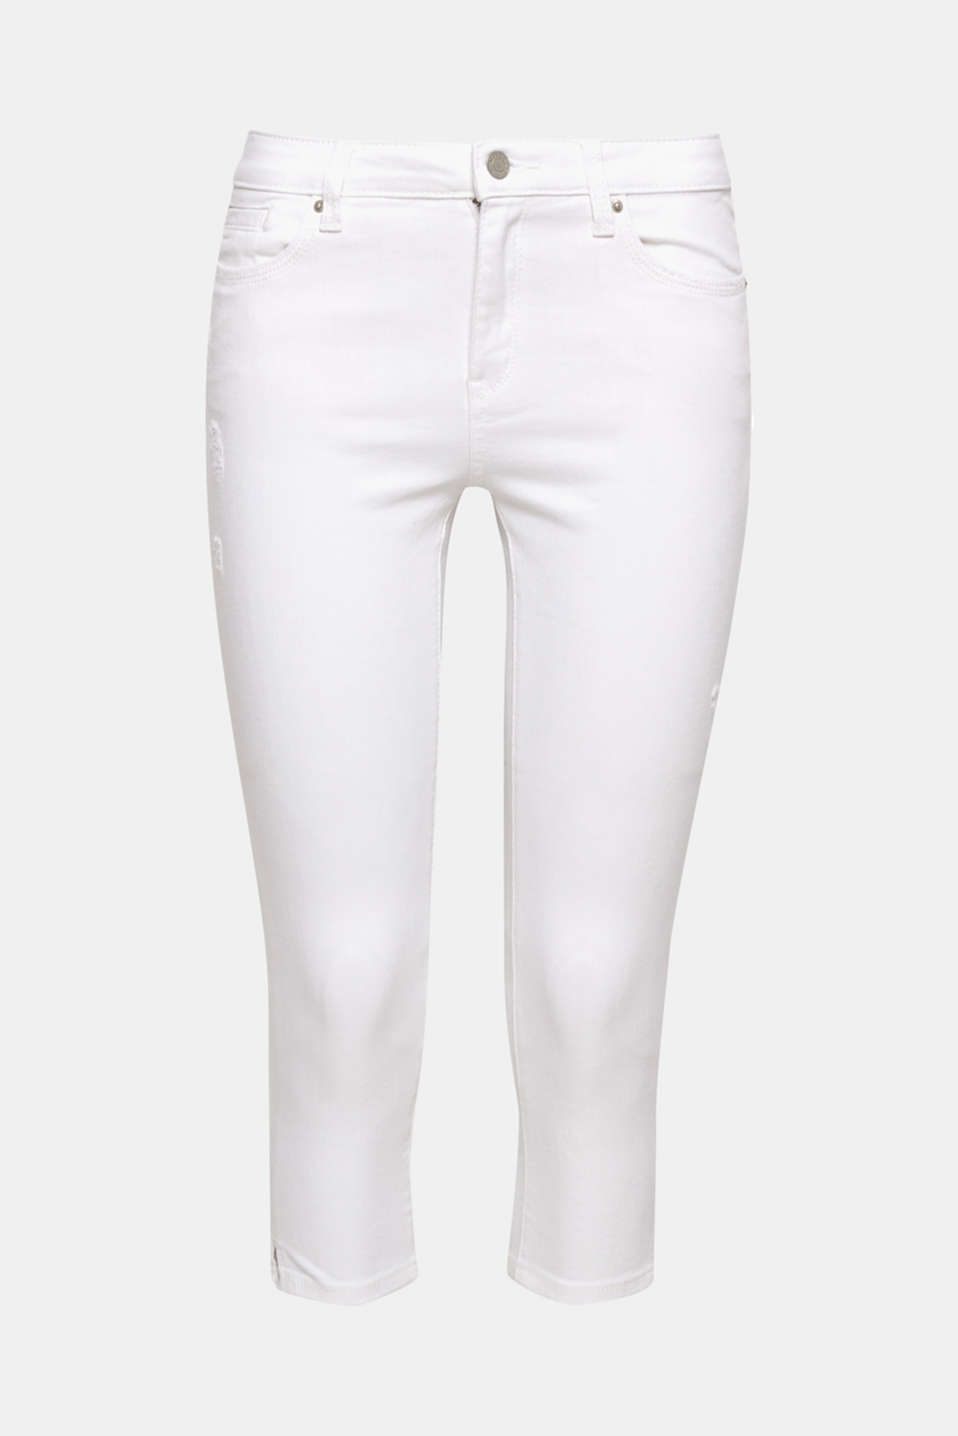 Our summer fave: fantastic-fitting Capri jeans made of comfy and stretchy, pure white denim.